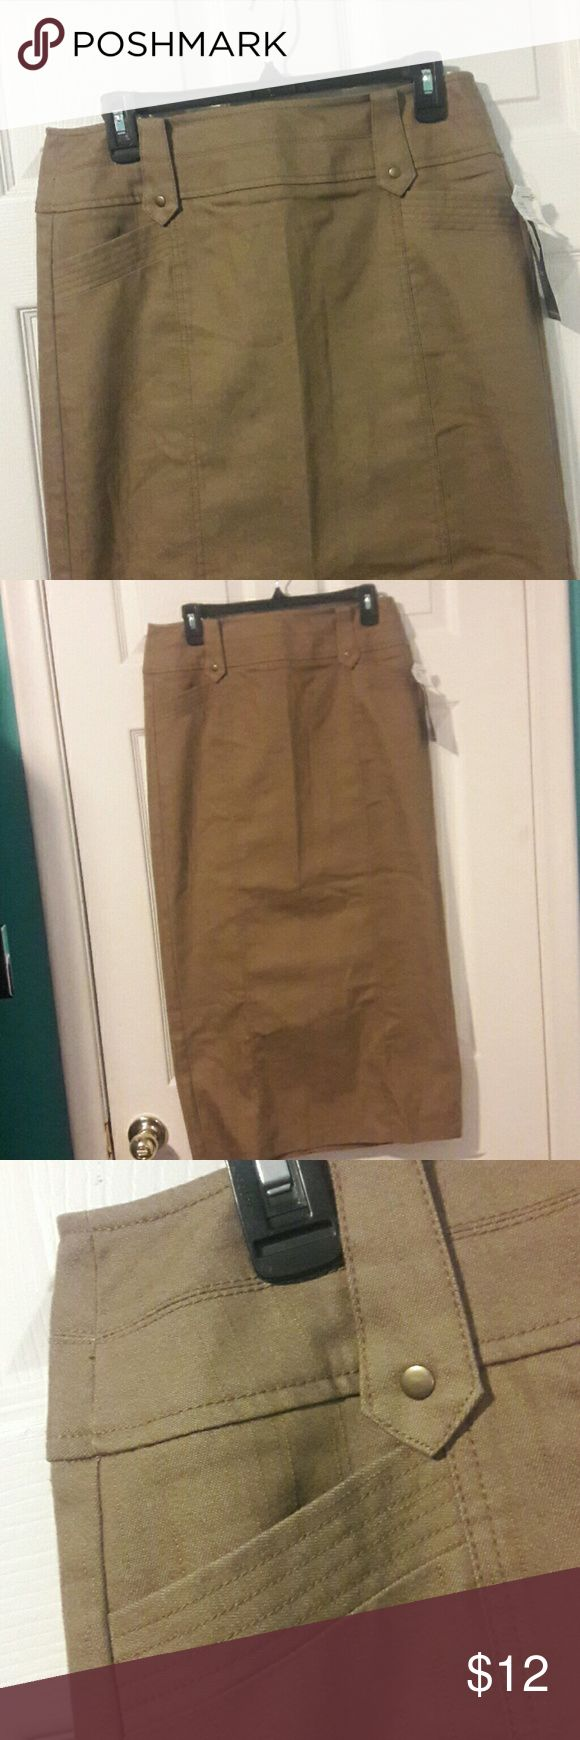 NEW NYCC PENCIL SKIRT New. Fabulous New York Clothing Company pencil skirt. 73% cotton 26% polyester 1% spandex. 35 in Long from waist to bottom. Almond color brown. Pockets in front. Slit in the back. New York Clothing Co Skirts Pencil